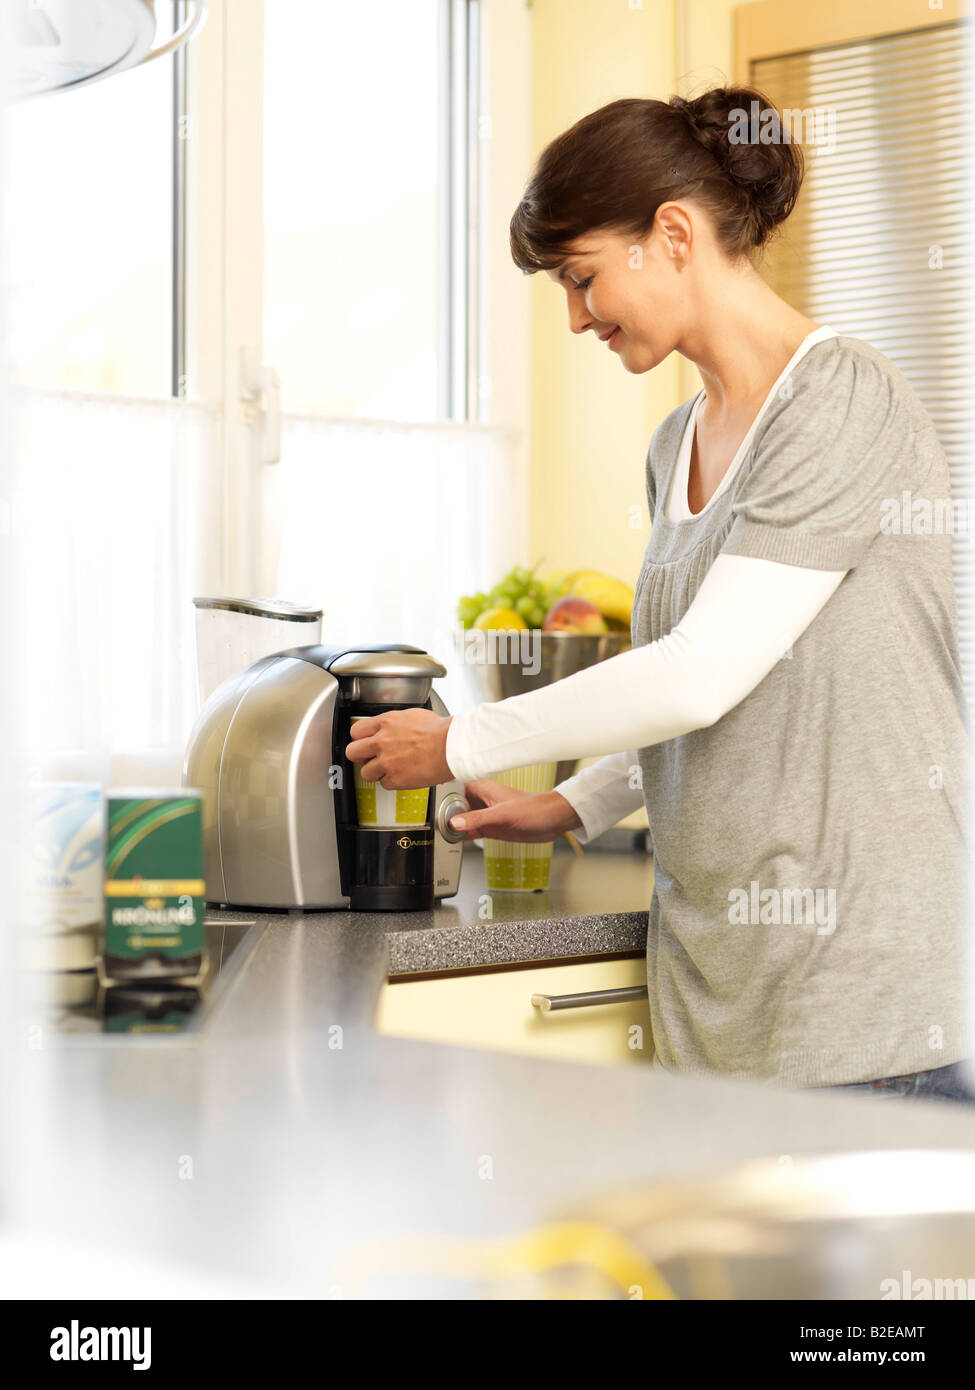 Side profile of young woman using coffee maker in kitchen - Stock Image